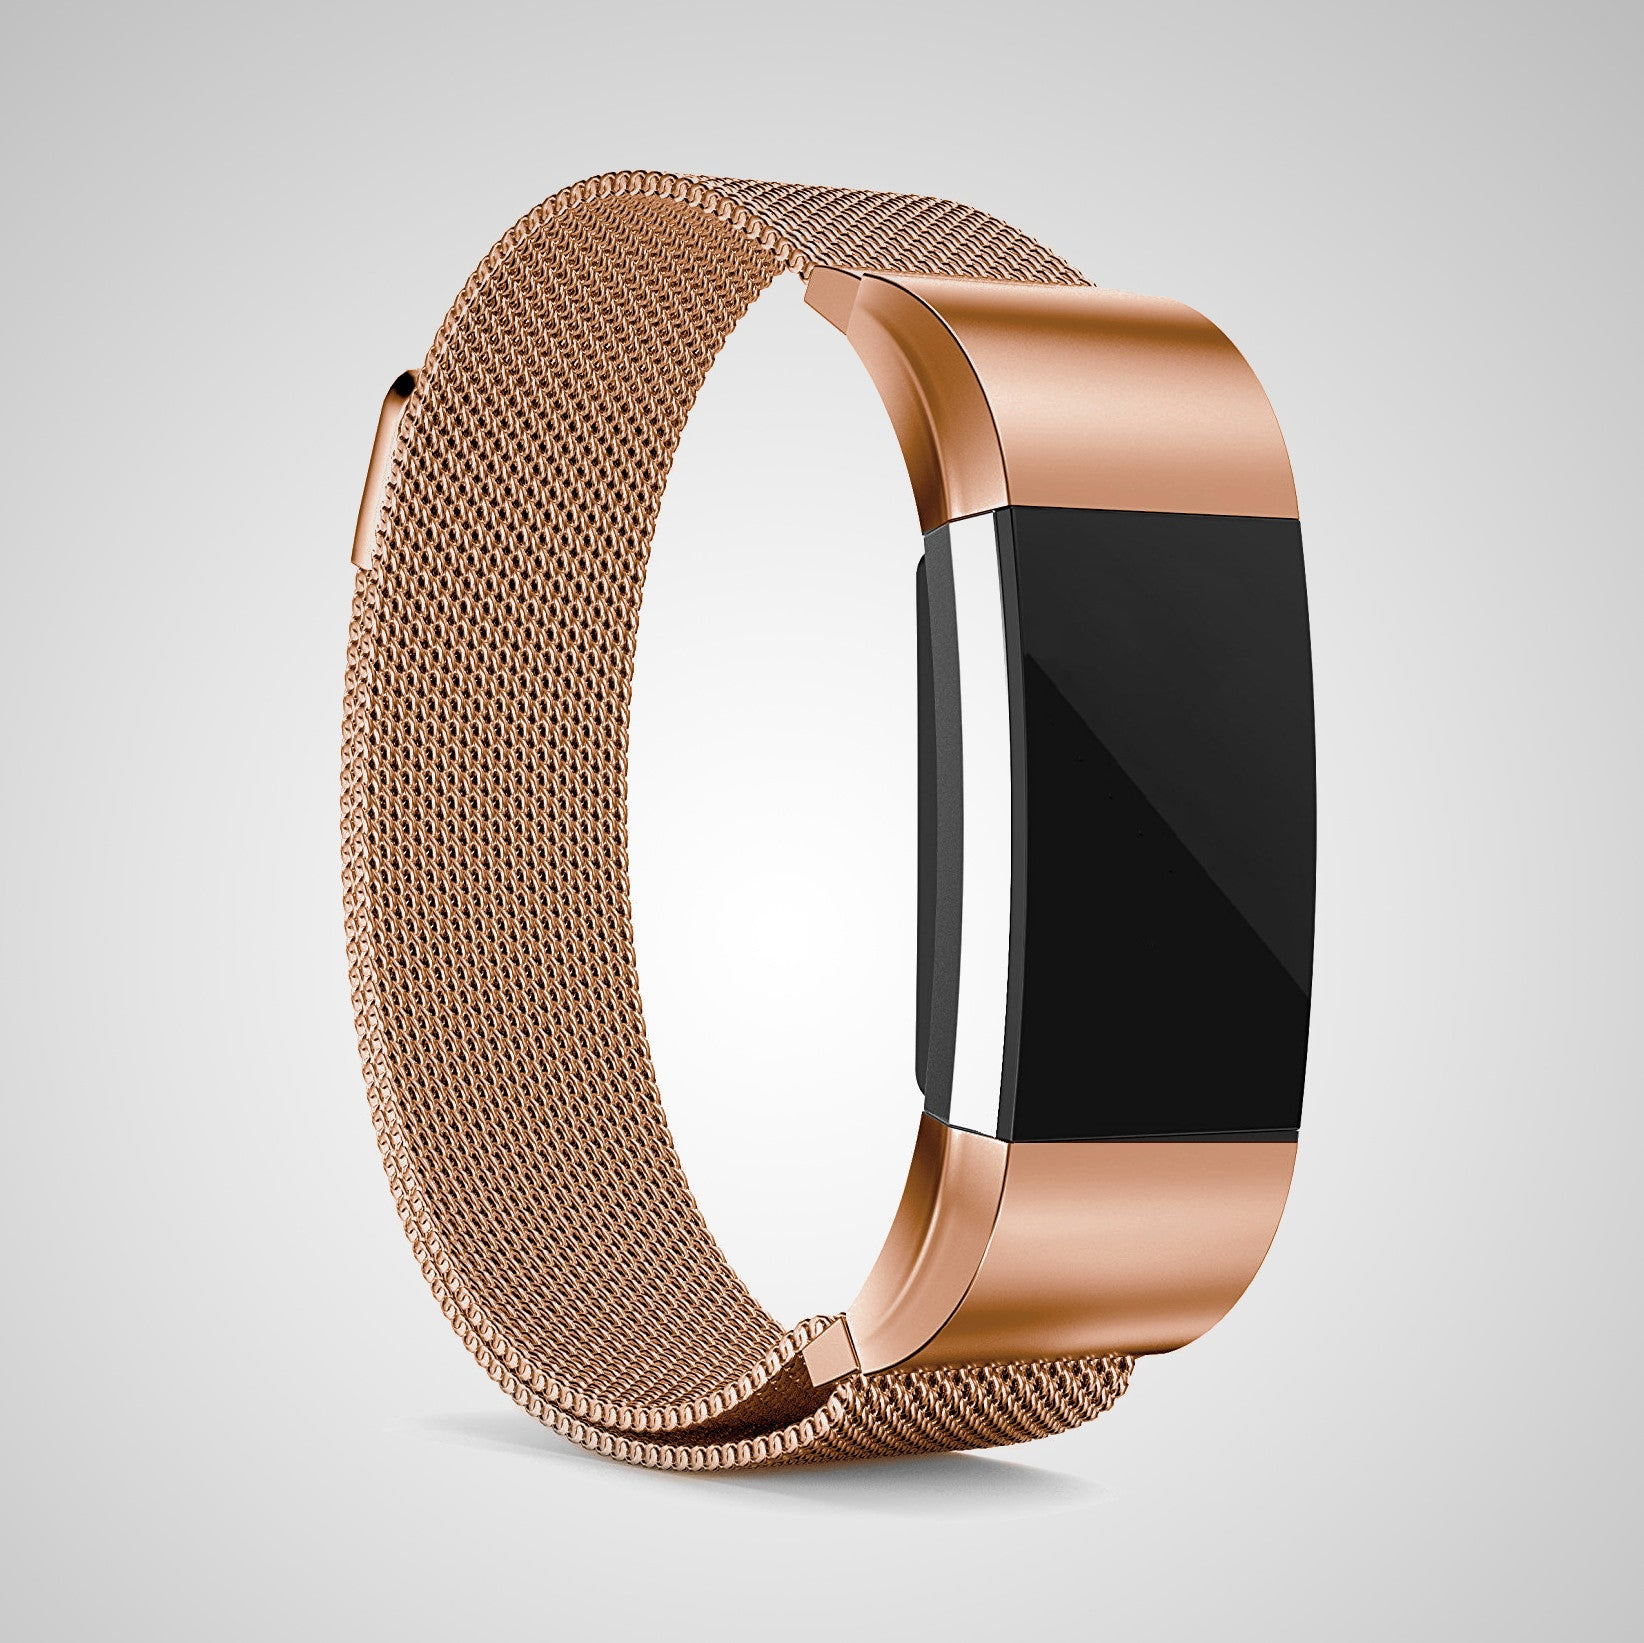 fitbit charge 2 bands rose gold edition